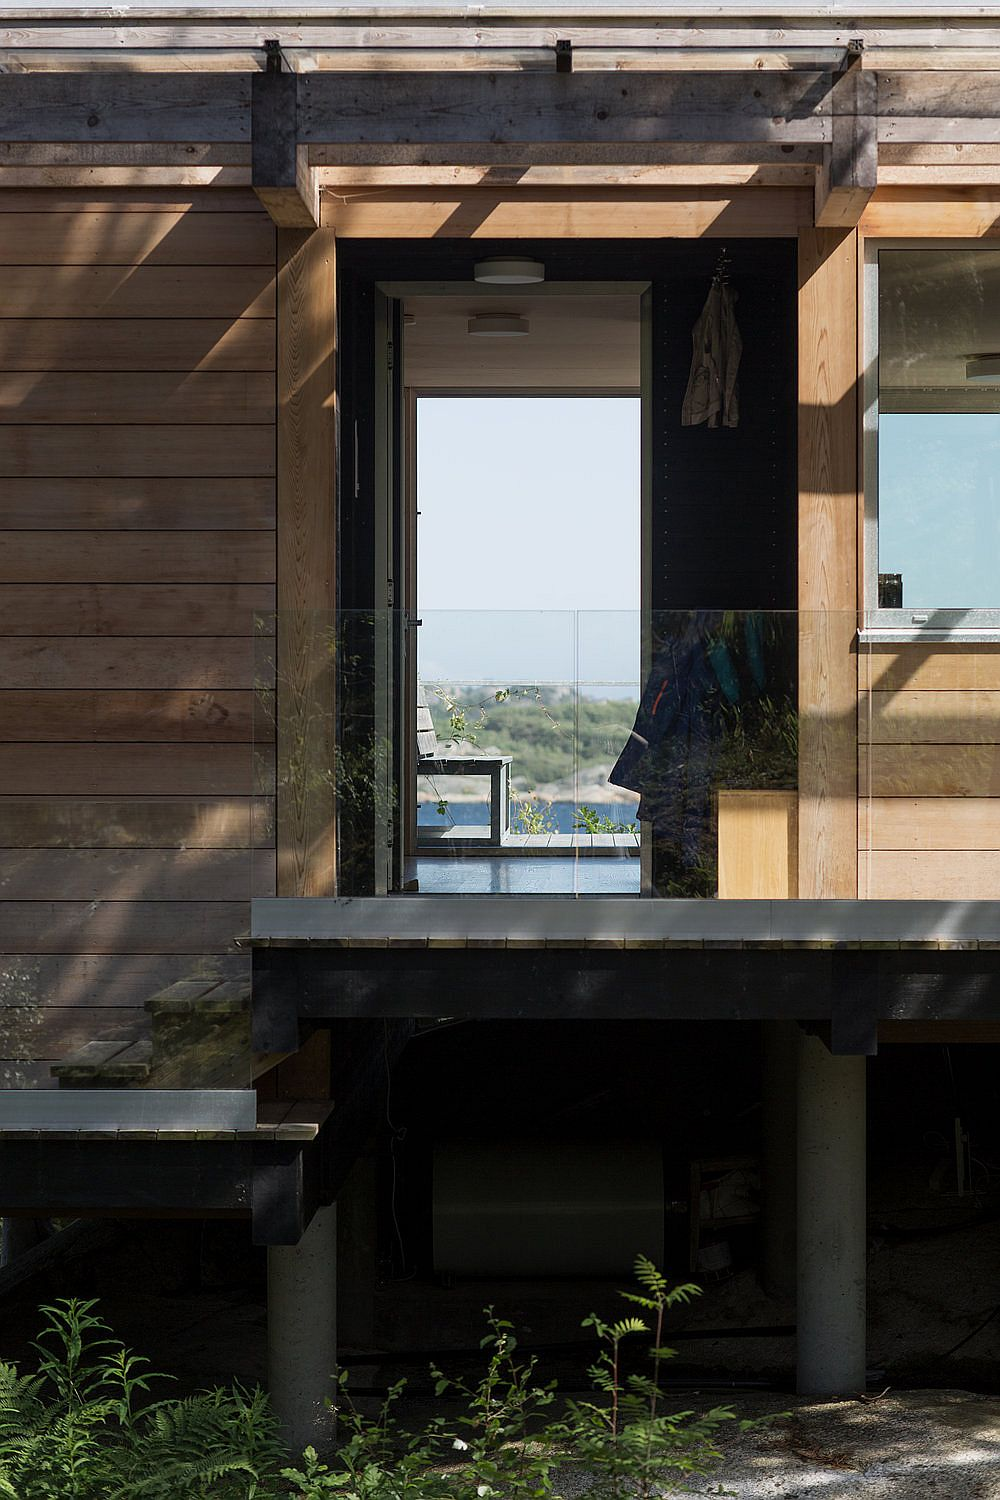 Elevated base of the cabin naturally protects the landscape it sits on